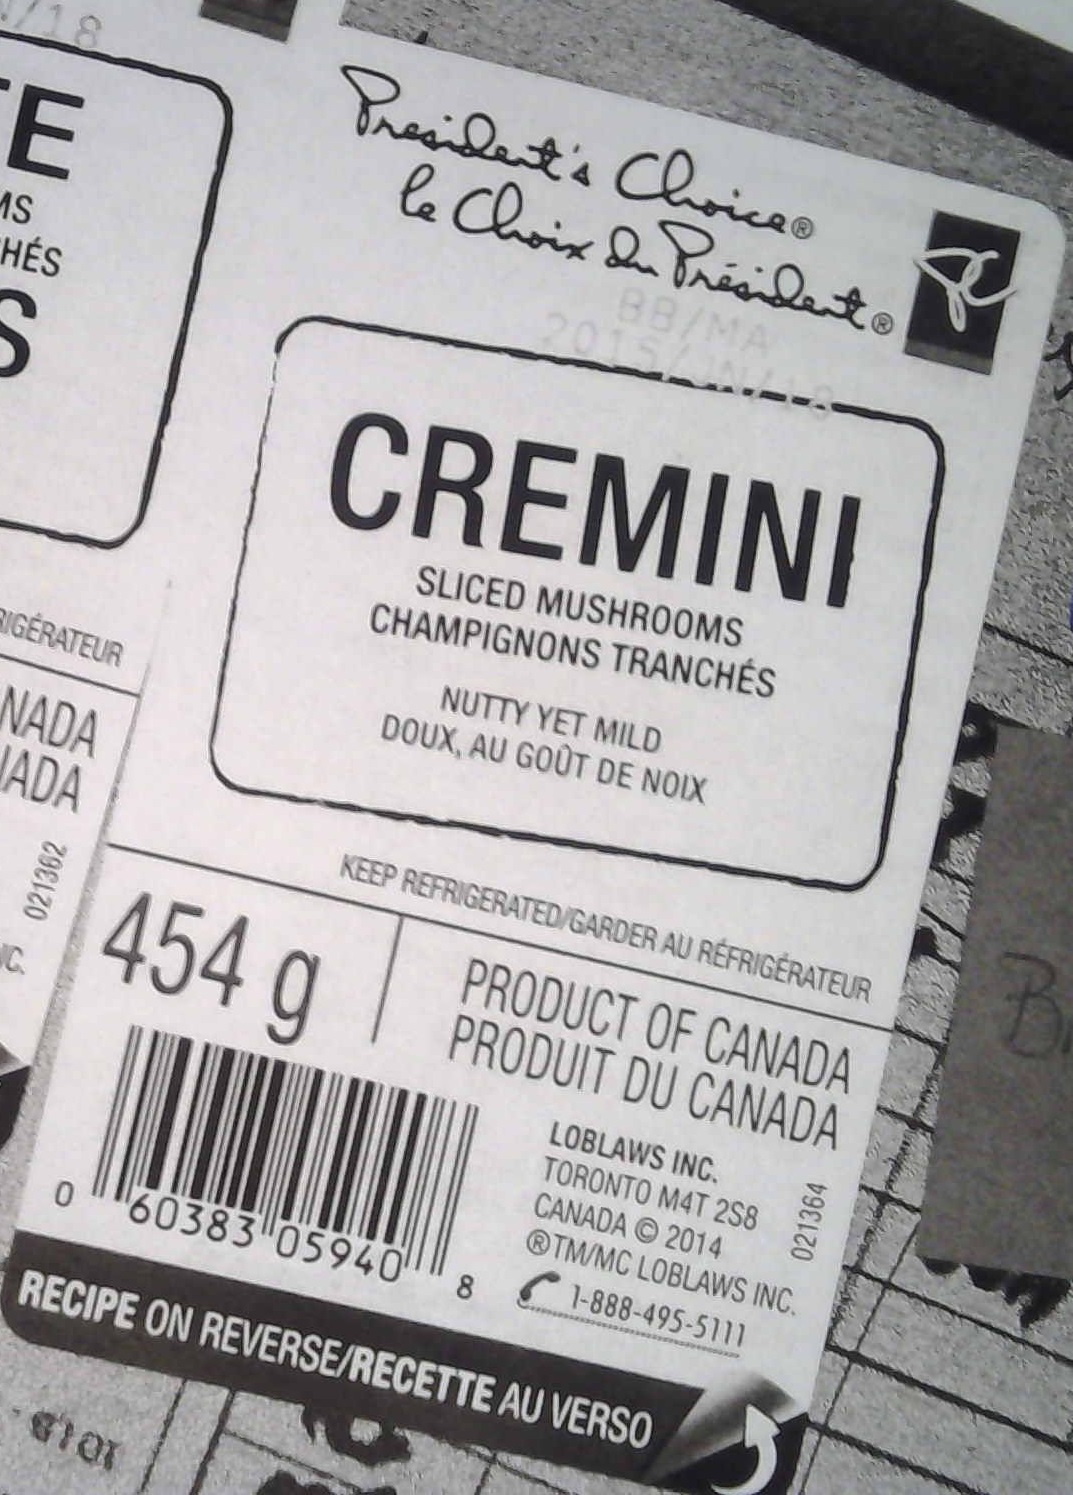 President's Choice - Cremini Sliced Mushrooms